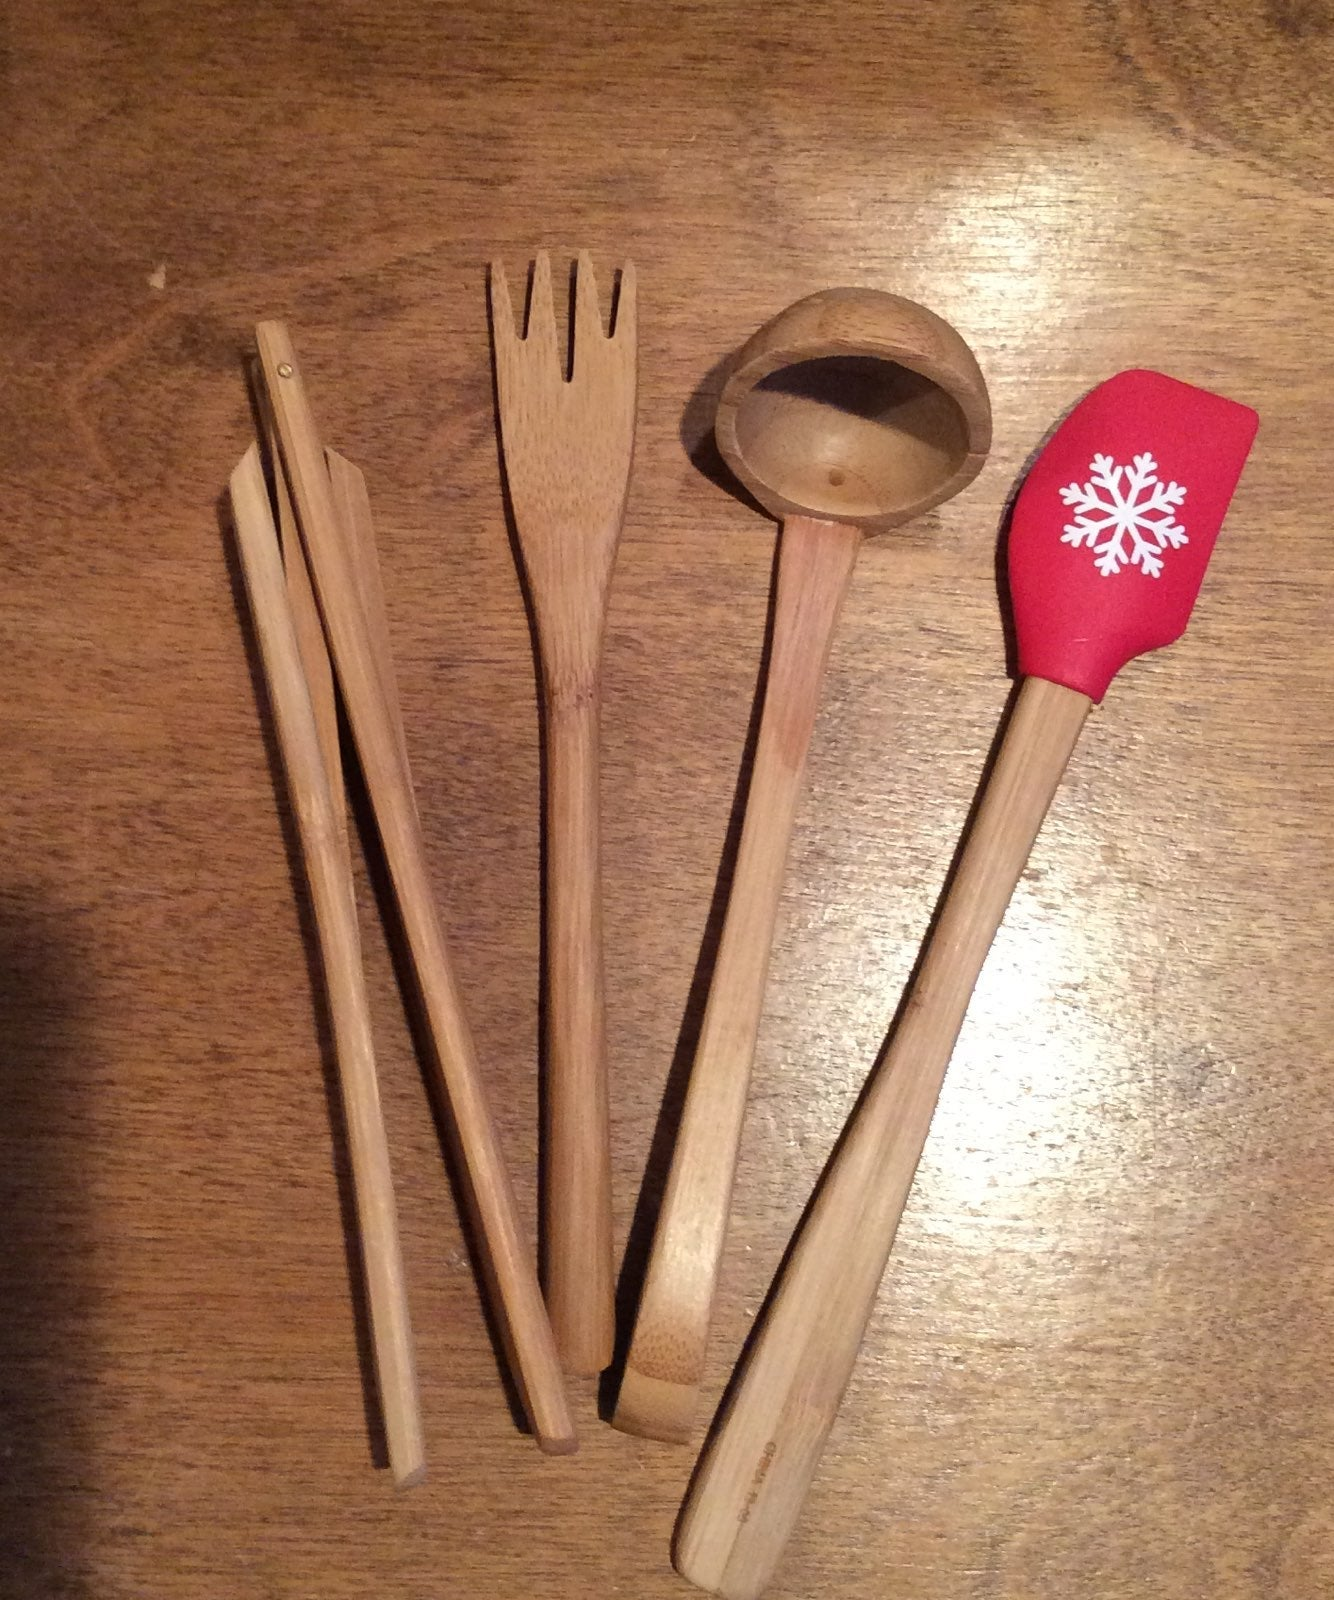 Pampered Chef Bamboo Serving Set